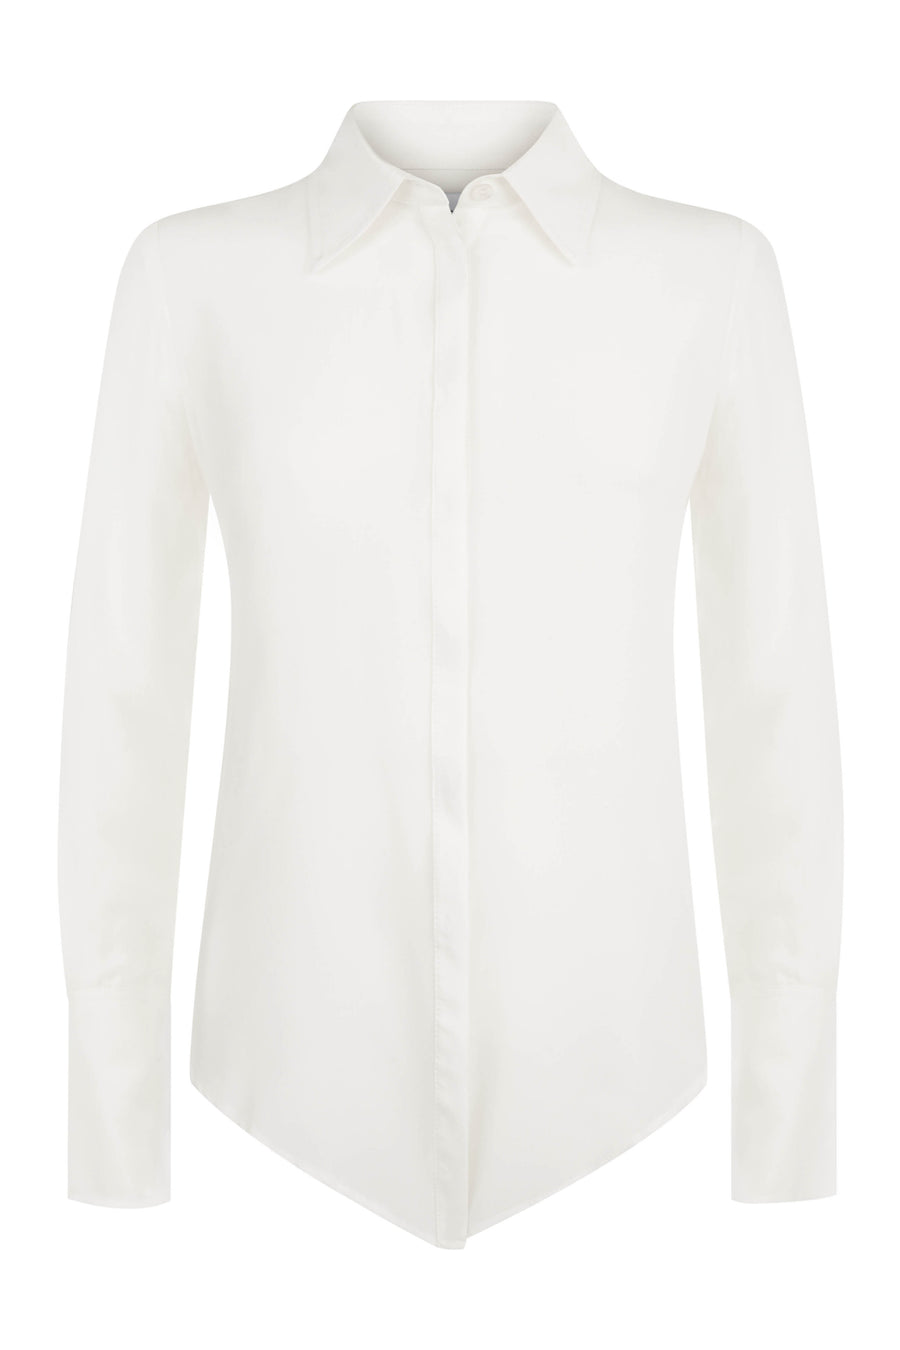 Beaulieu Ivory Silk Shirt